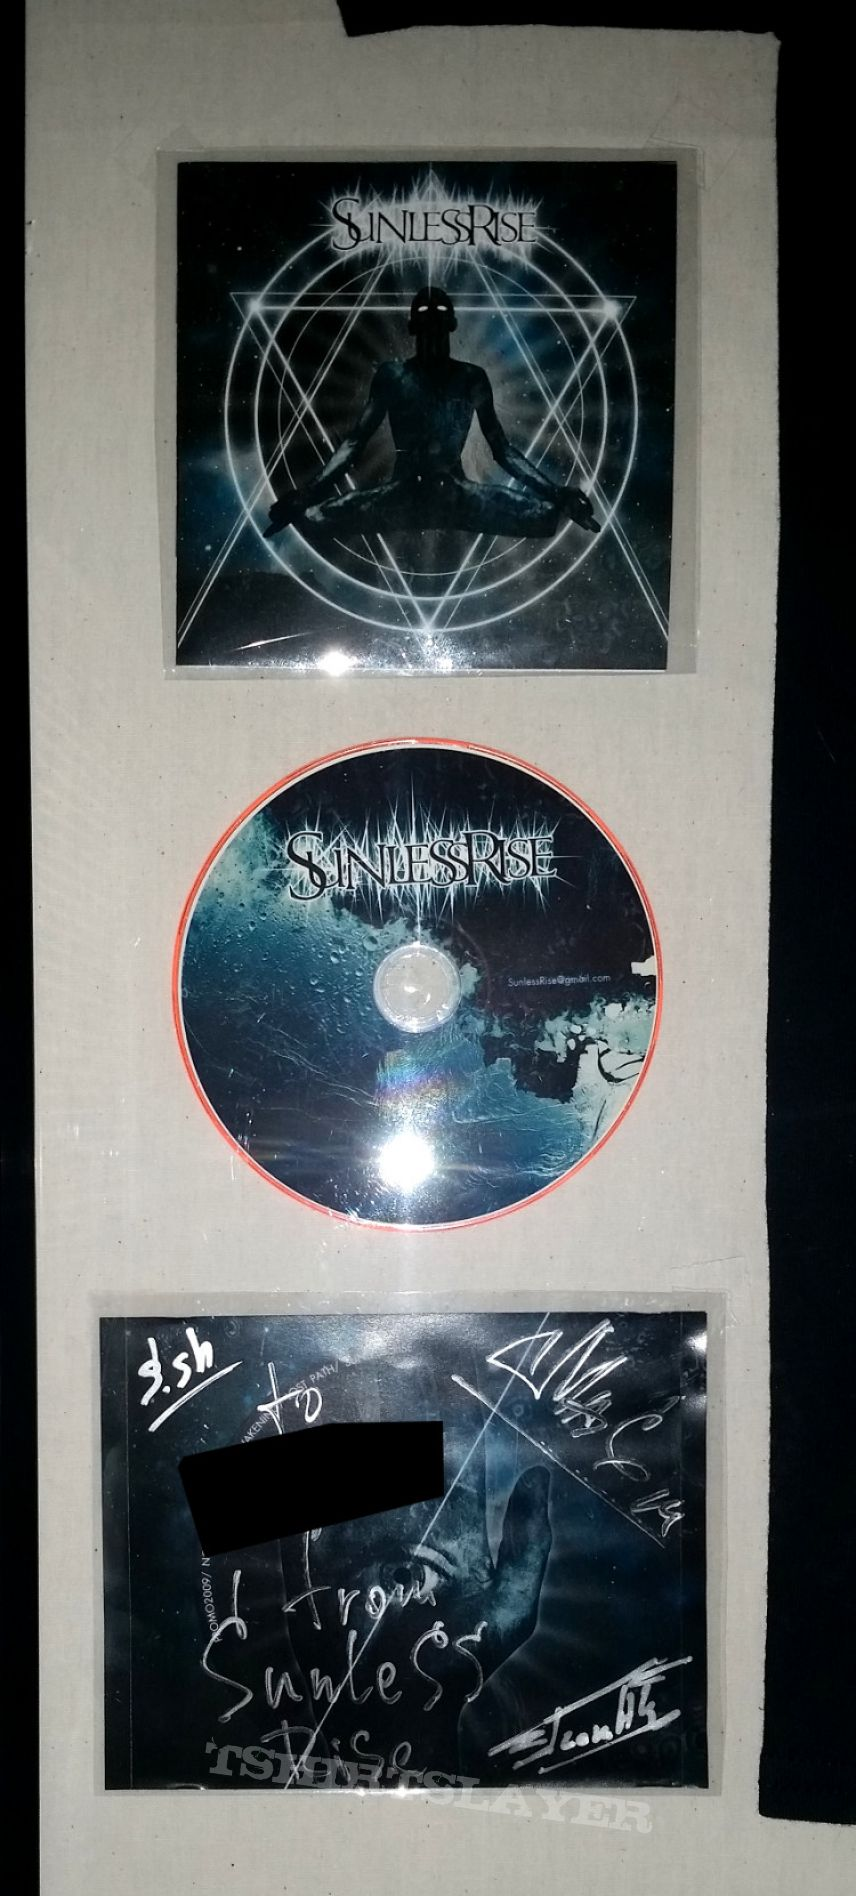 Sunless Rise, LE Shirt & Signed Demo CD